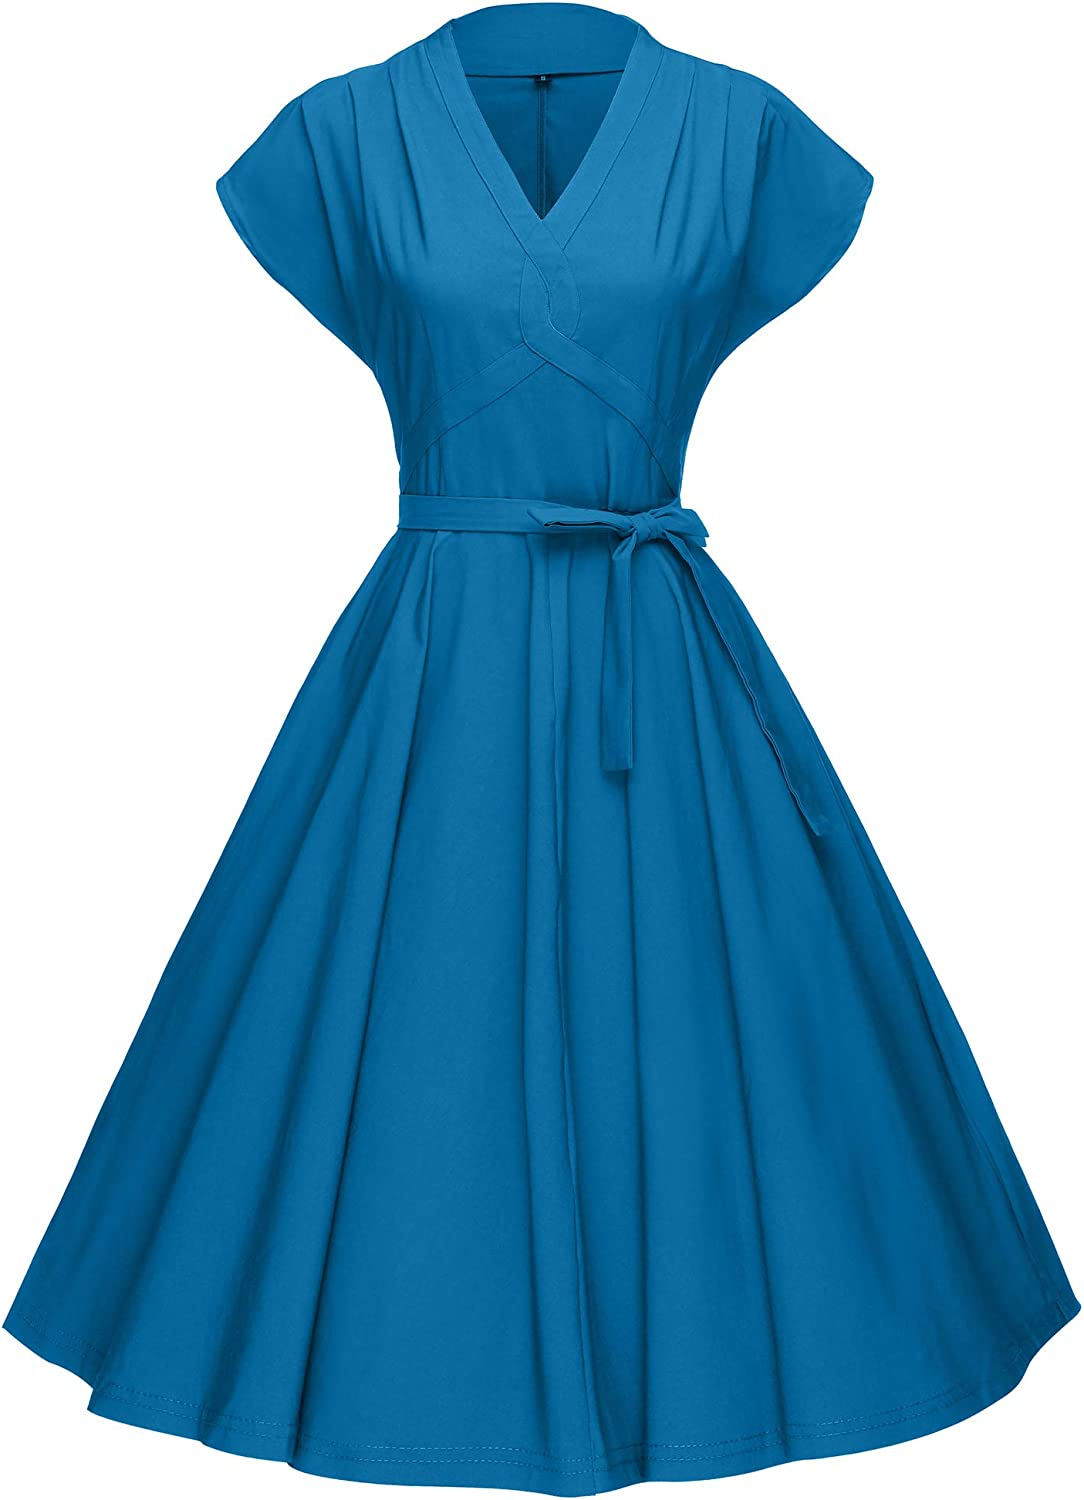 1950s Dresses, 50s Dresses | 1950s Style Dresses GownTown Womens 1950s Vintage Rockabilly Swing Stretchy Dress $32.98 AT vintagedancer.com